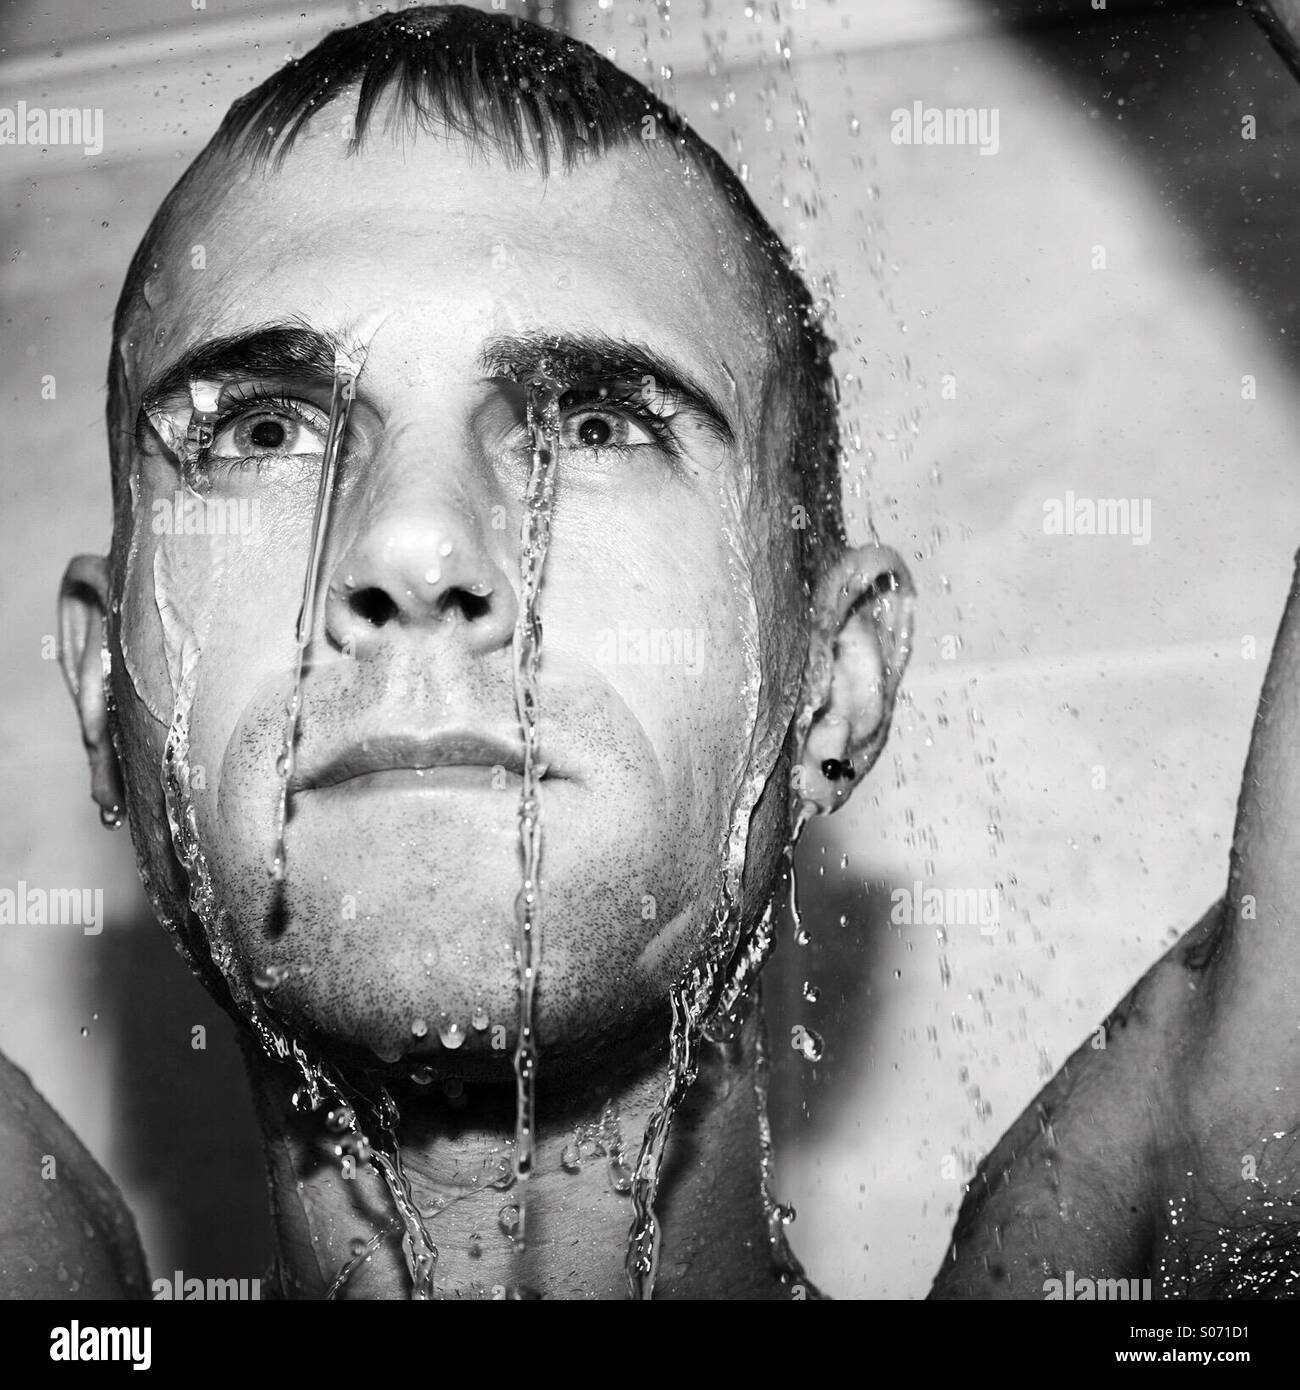 Guy in shower with wet face - Stock Image